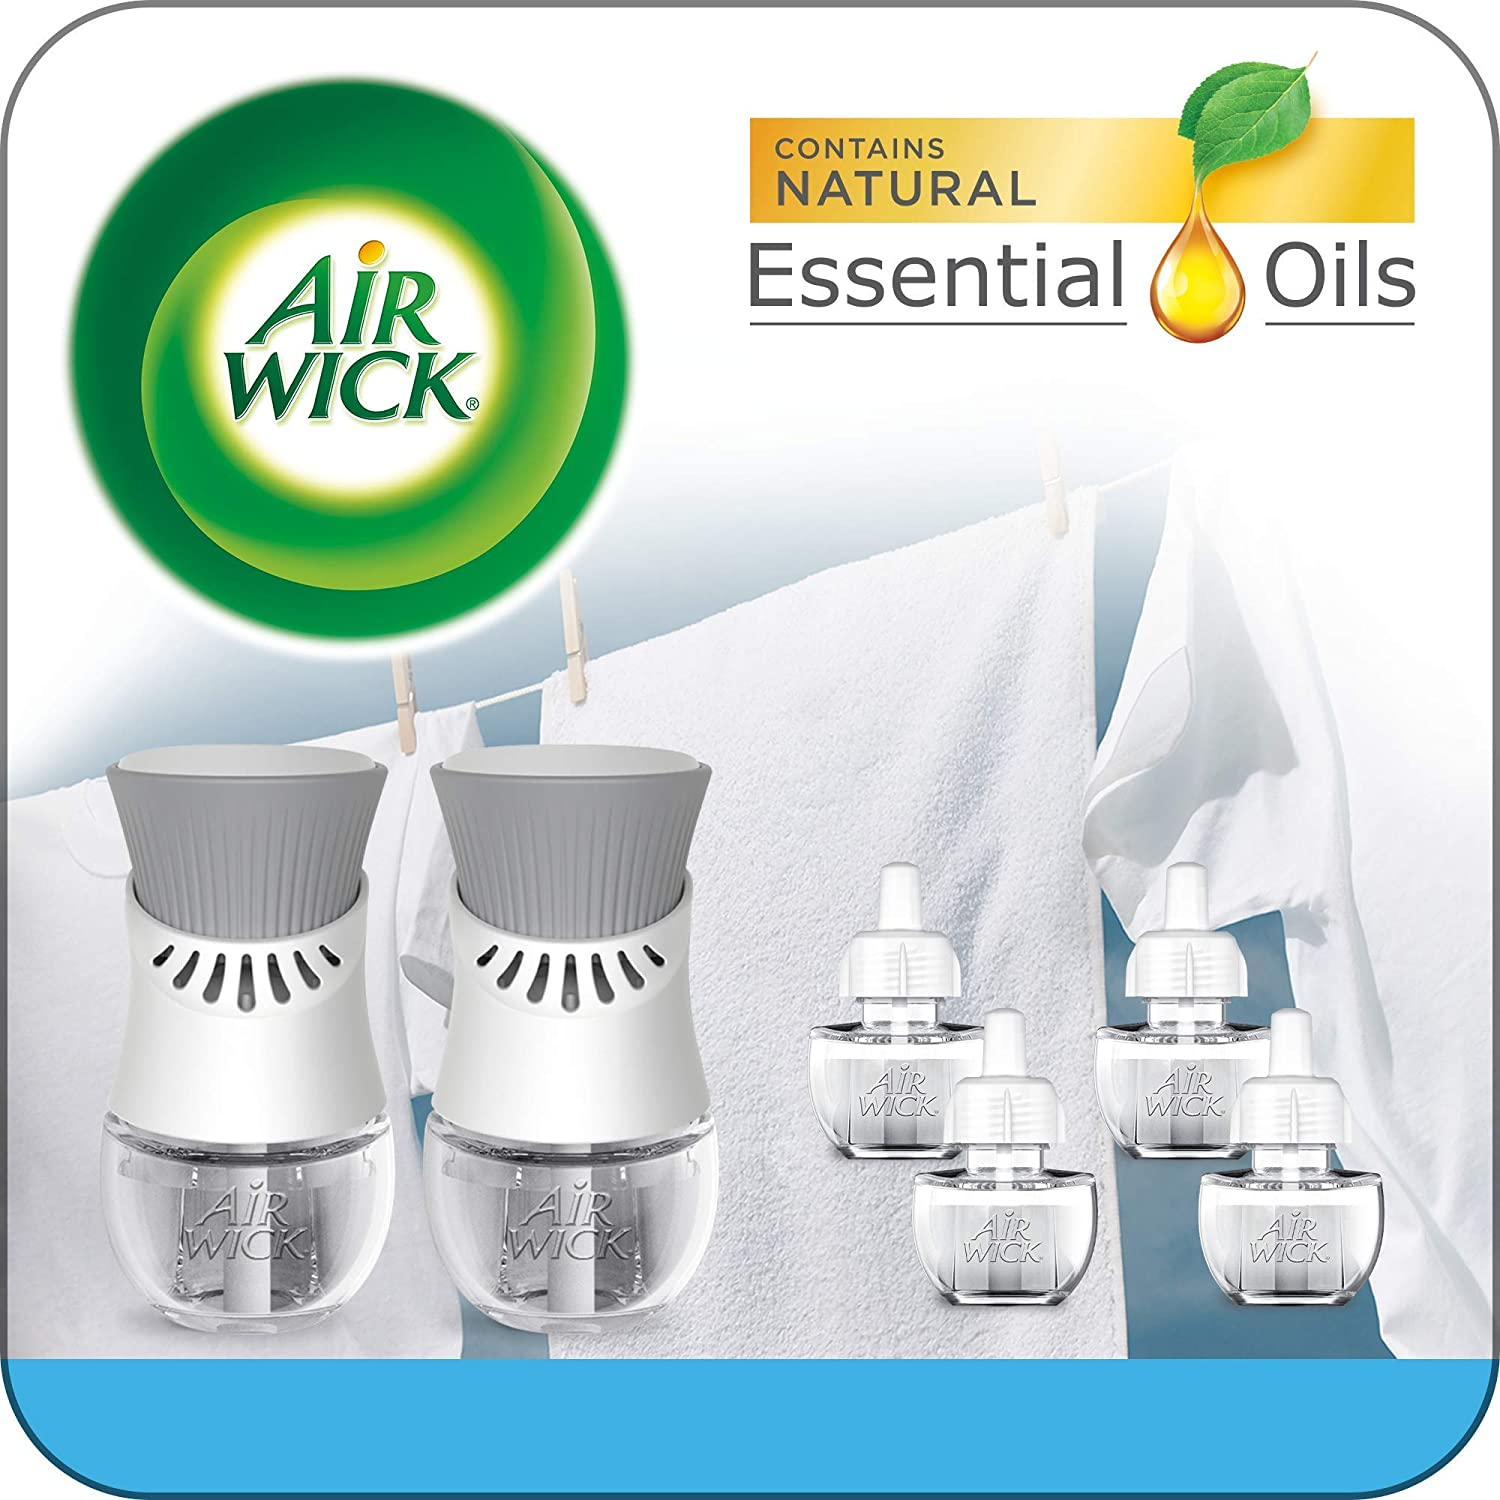 Air Wick Plug in Scented Oil Starter Kit, 2 Warmers + 6 Refills, Fresh Linen, Same Familiar Smell of Fresh Laundry, Eco Friendly, Essential Oils, Air Freshener